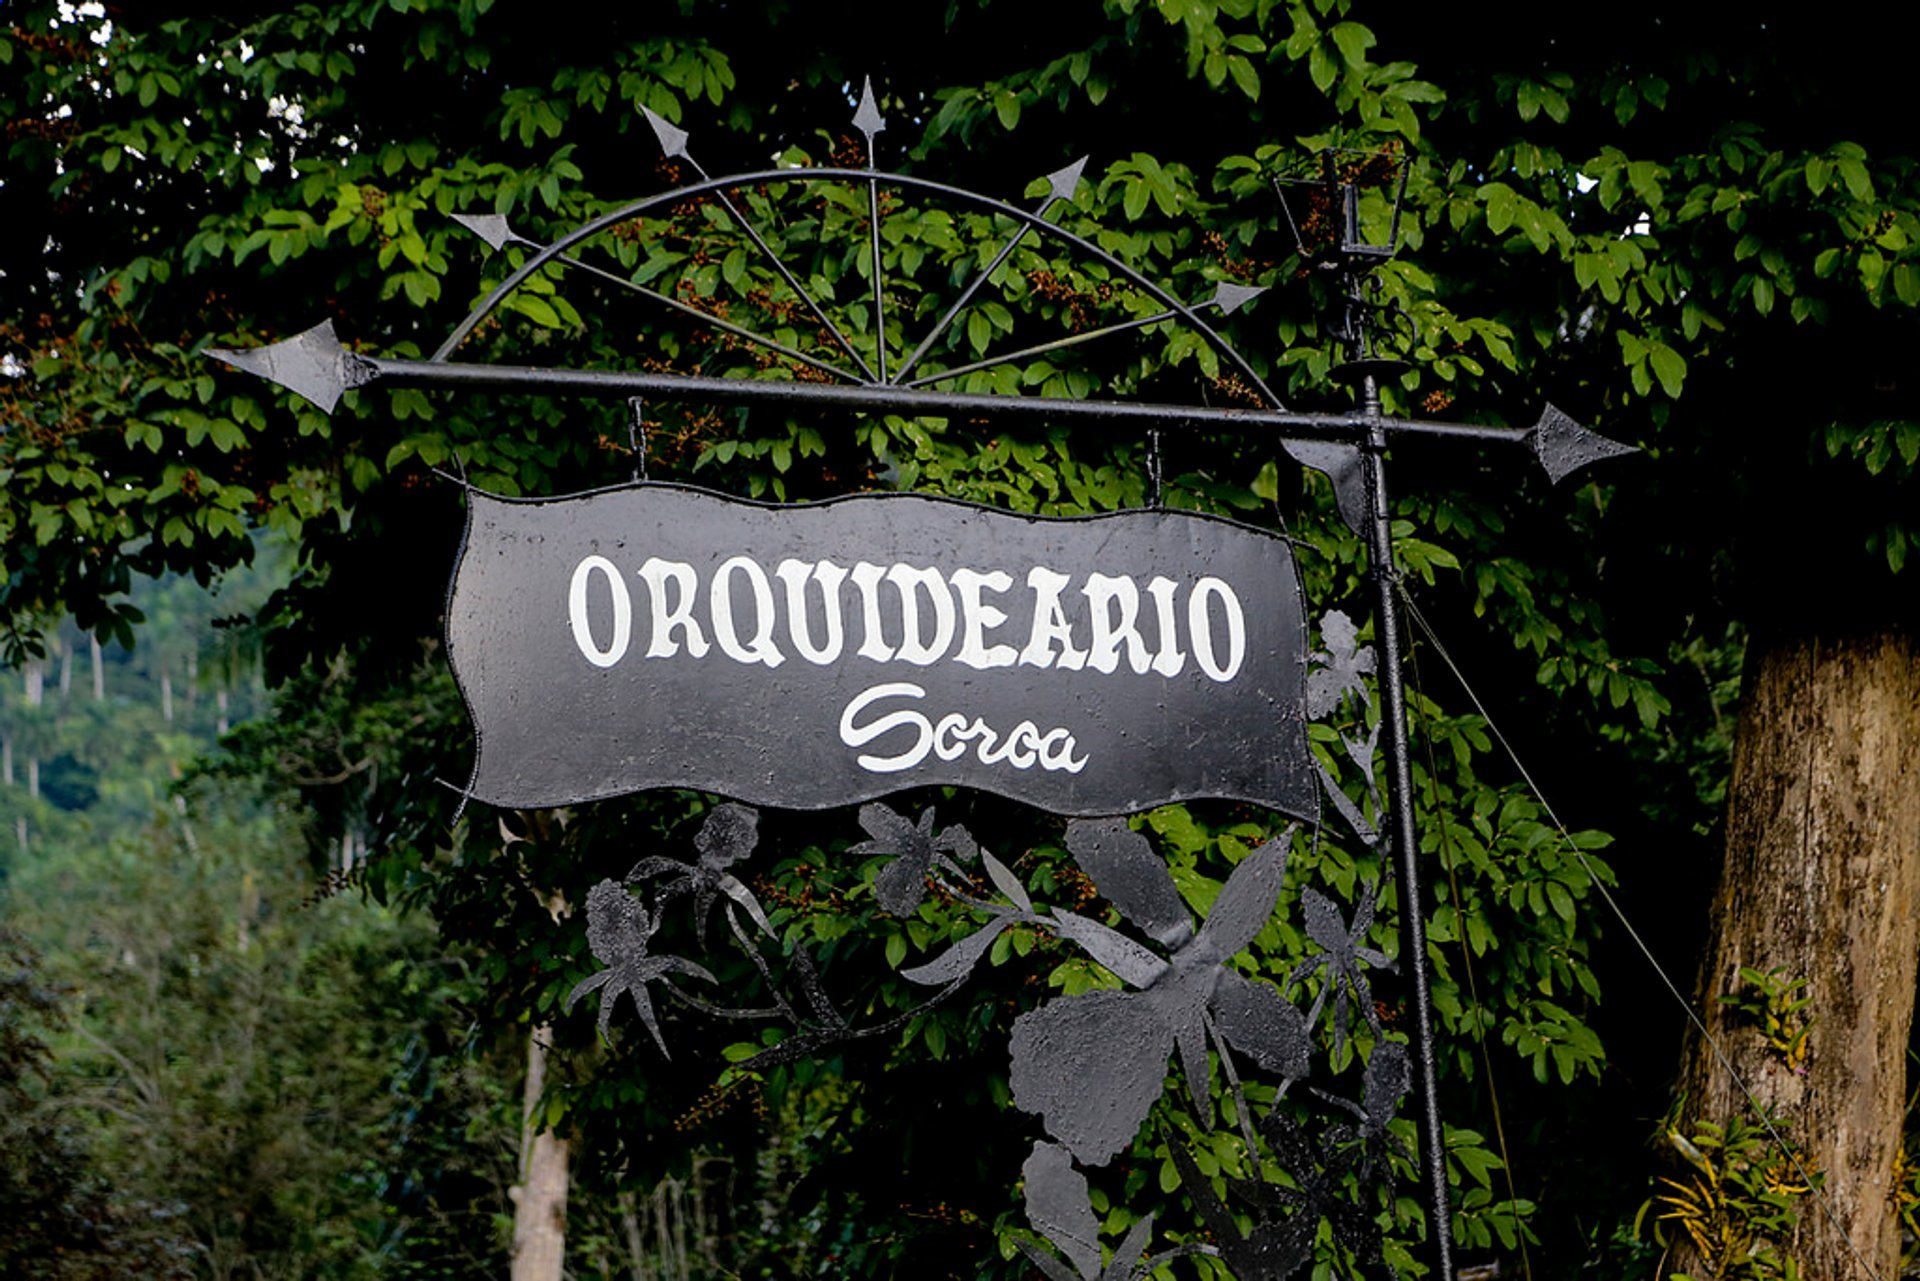 Orquideario de Soroa in Cuba - Best Season 2020